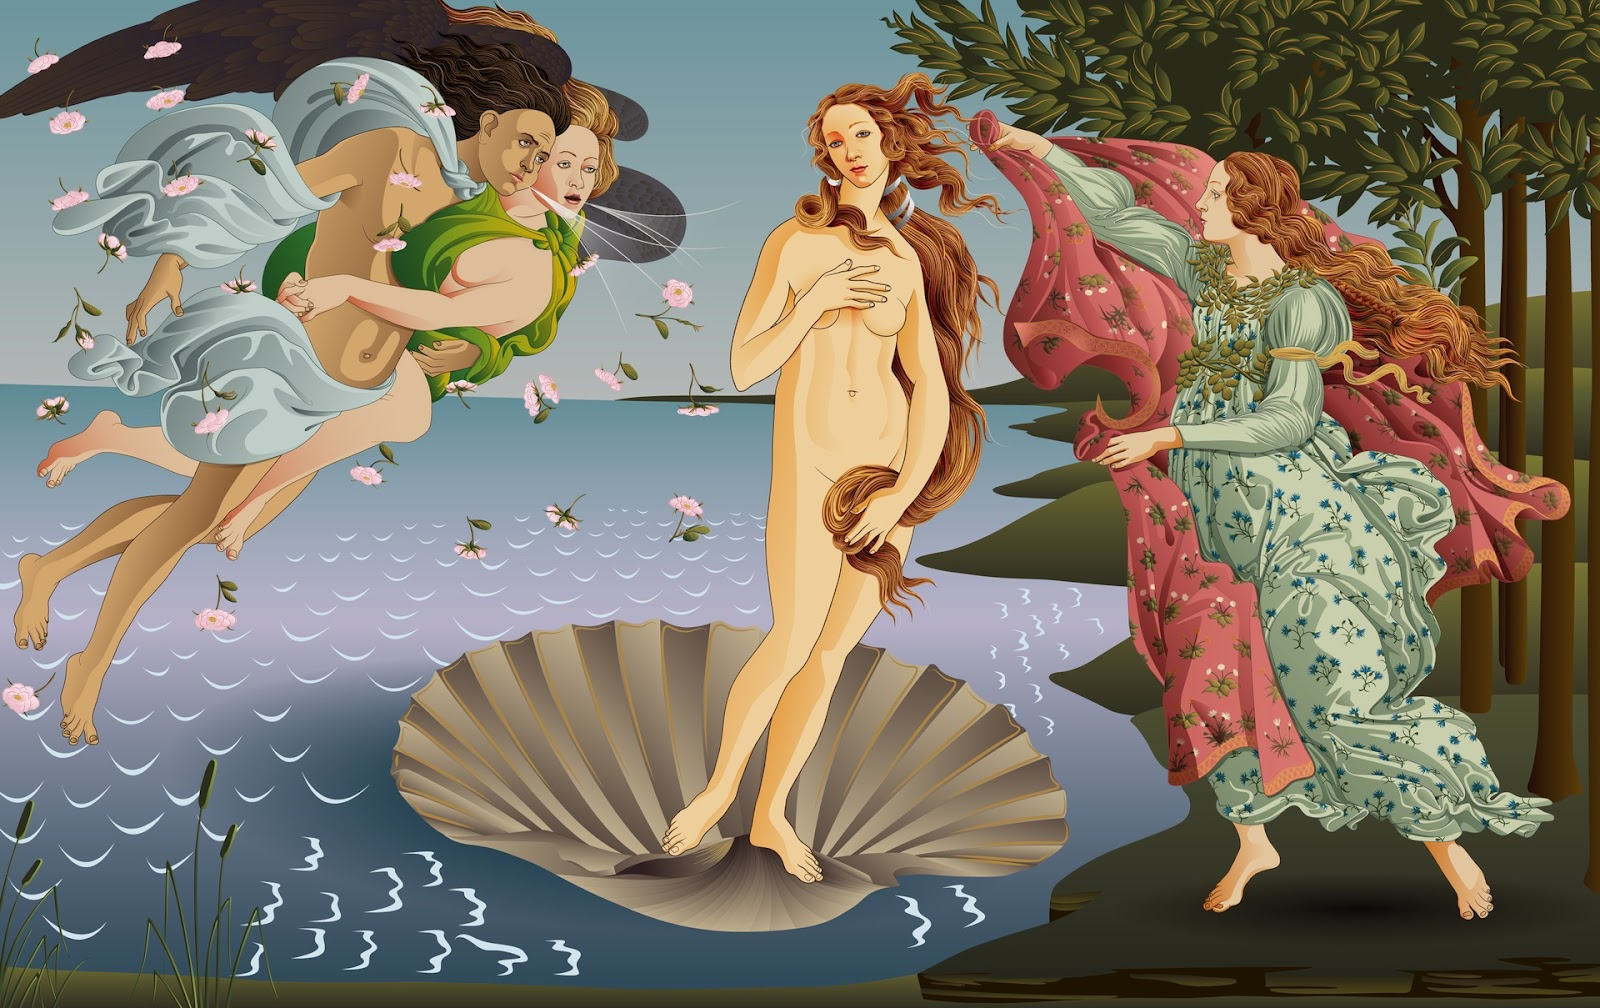 an analysis of the artwork the birth of venus by sandro botticello Sandro botticelli has created this tempura on canvas painting , it measures 1725 x 2785cm and is located in the galleria degli uffizi in florence the birth of venus belongs to the renaissance period and is not a representation of a christian legend but an interpretation of a classical myth.